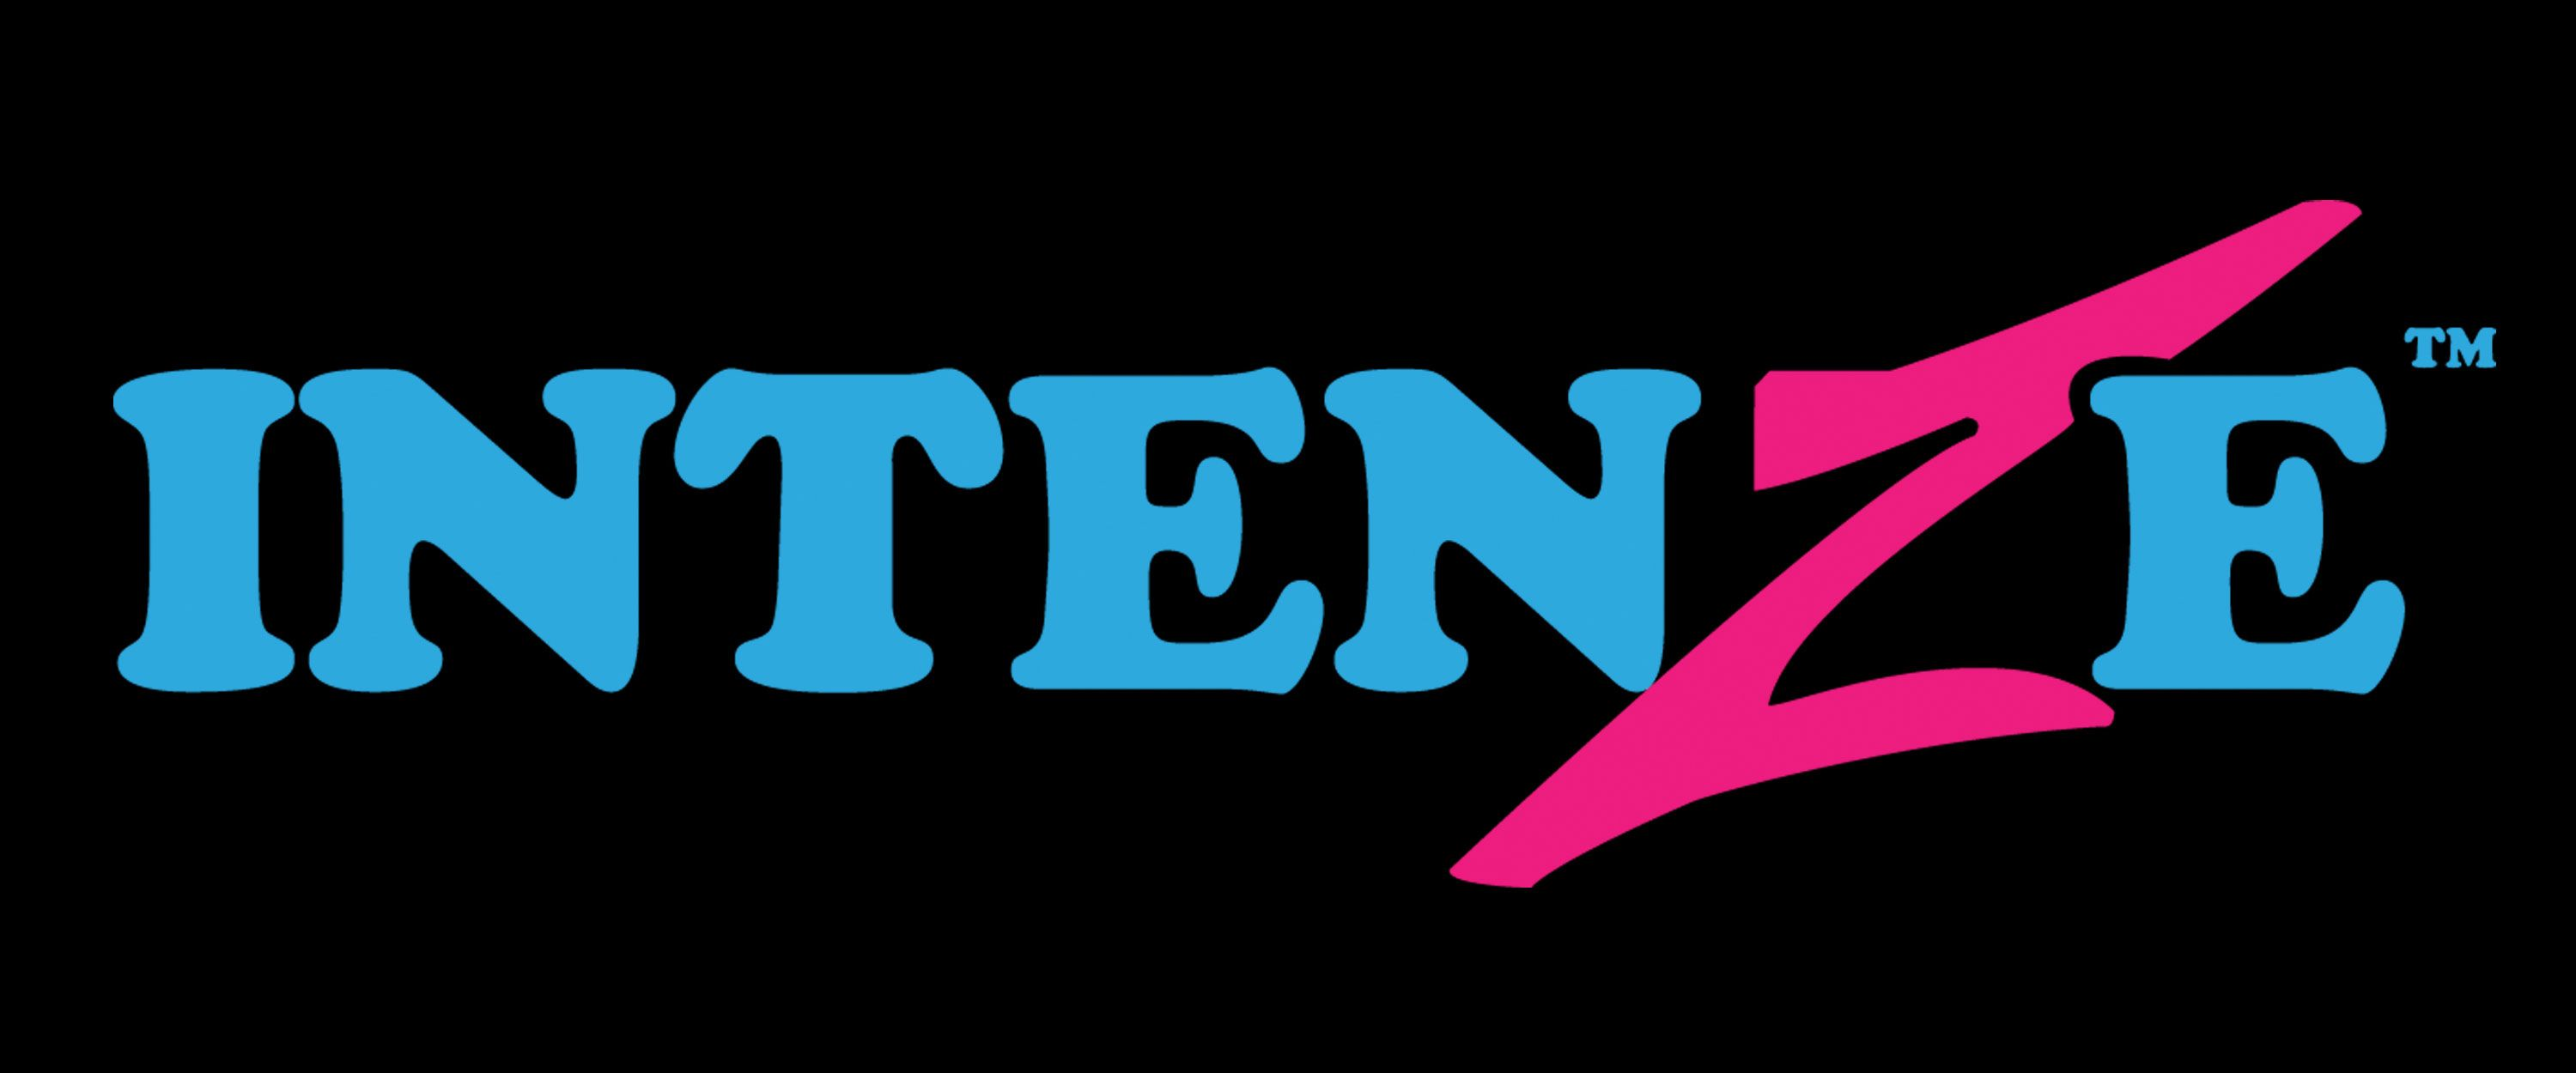 INTENZE TATTOO INK LOGO - Google Search (With images) | Ink logo ...